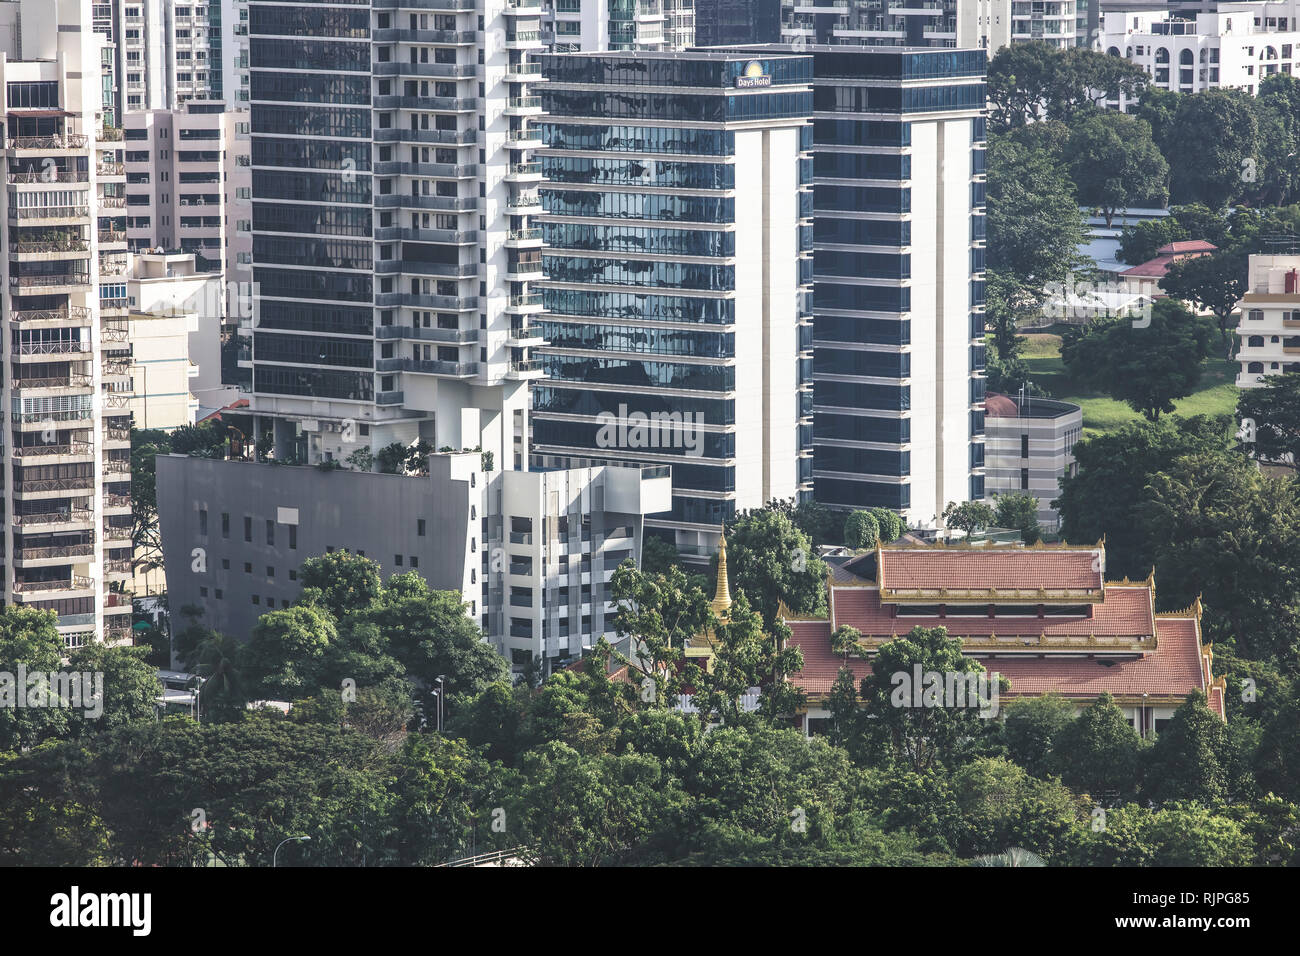 Singapore / Singapore - January 15 2019: Singapore Toa Payoh Balestier high density buildings aerial view in elegant retro muted colours - Stock Image